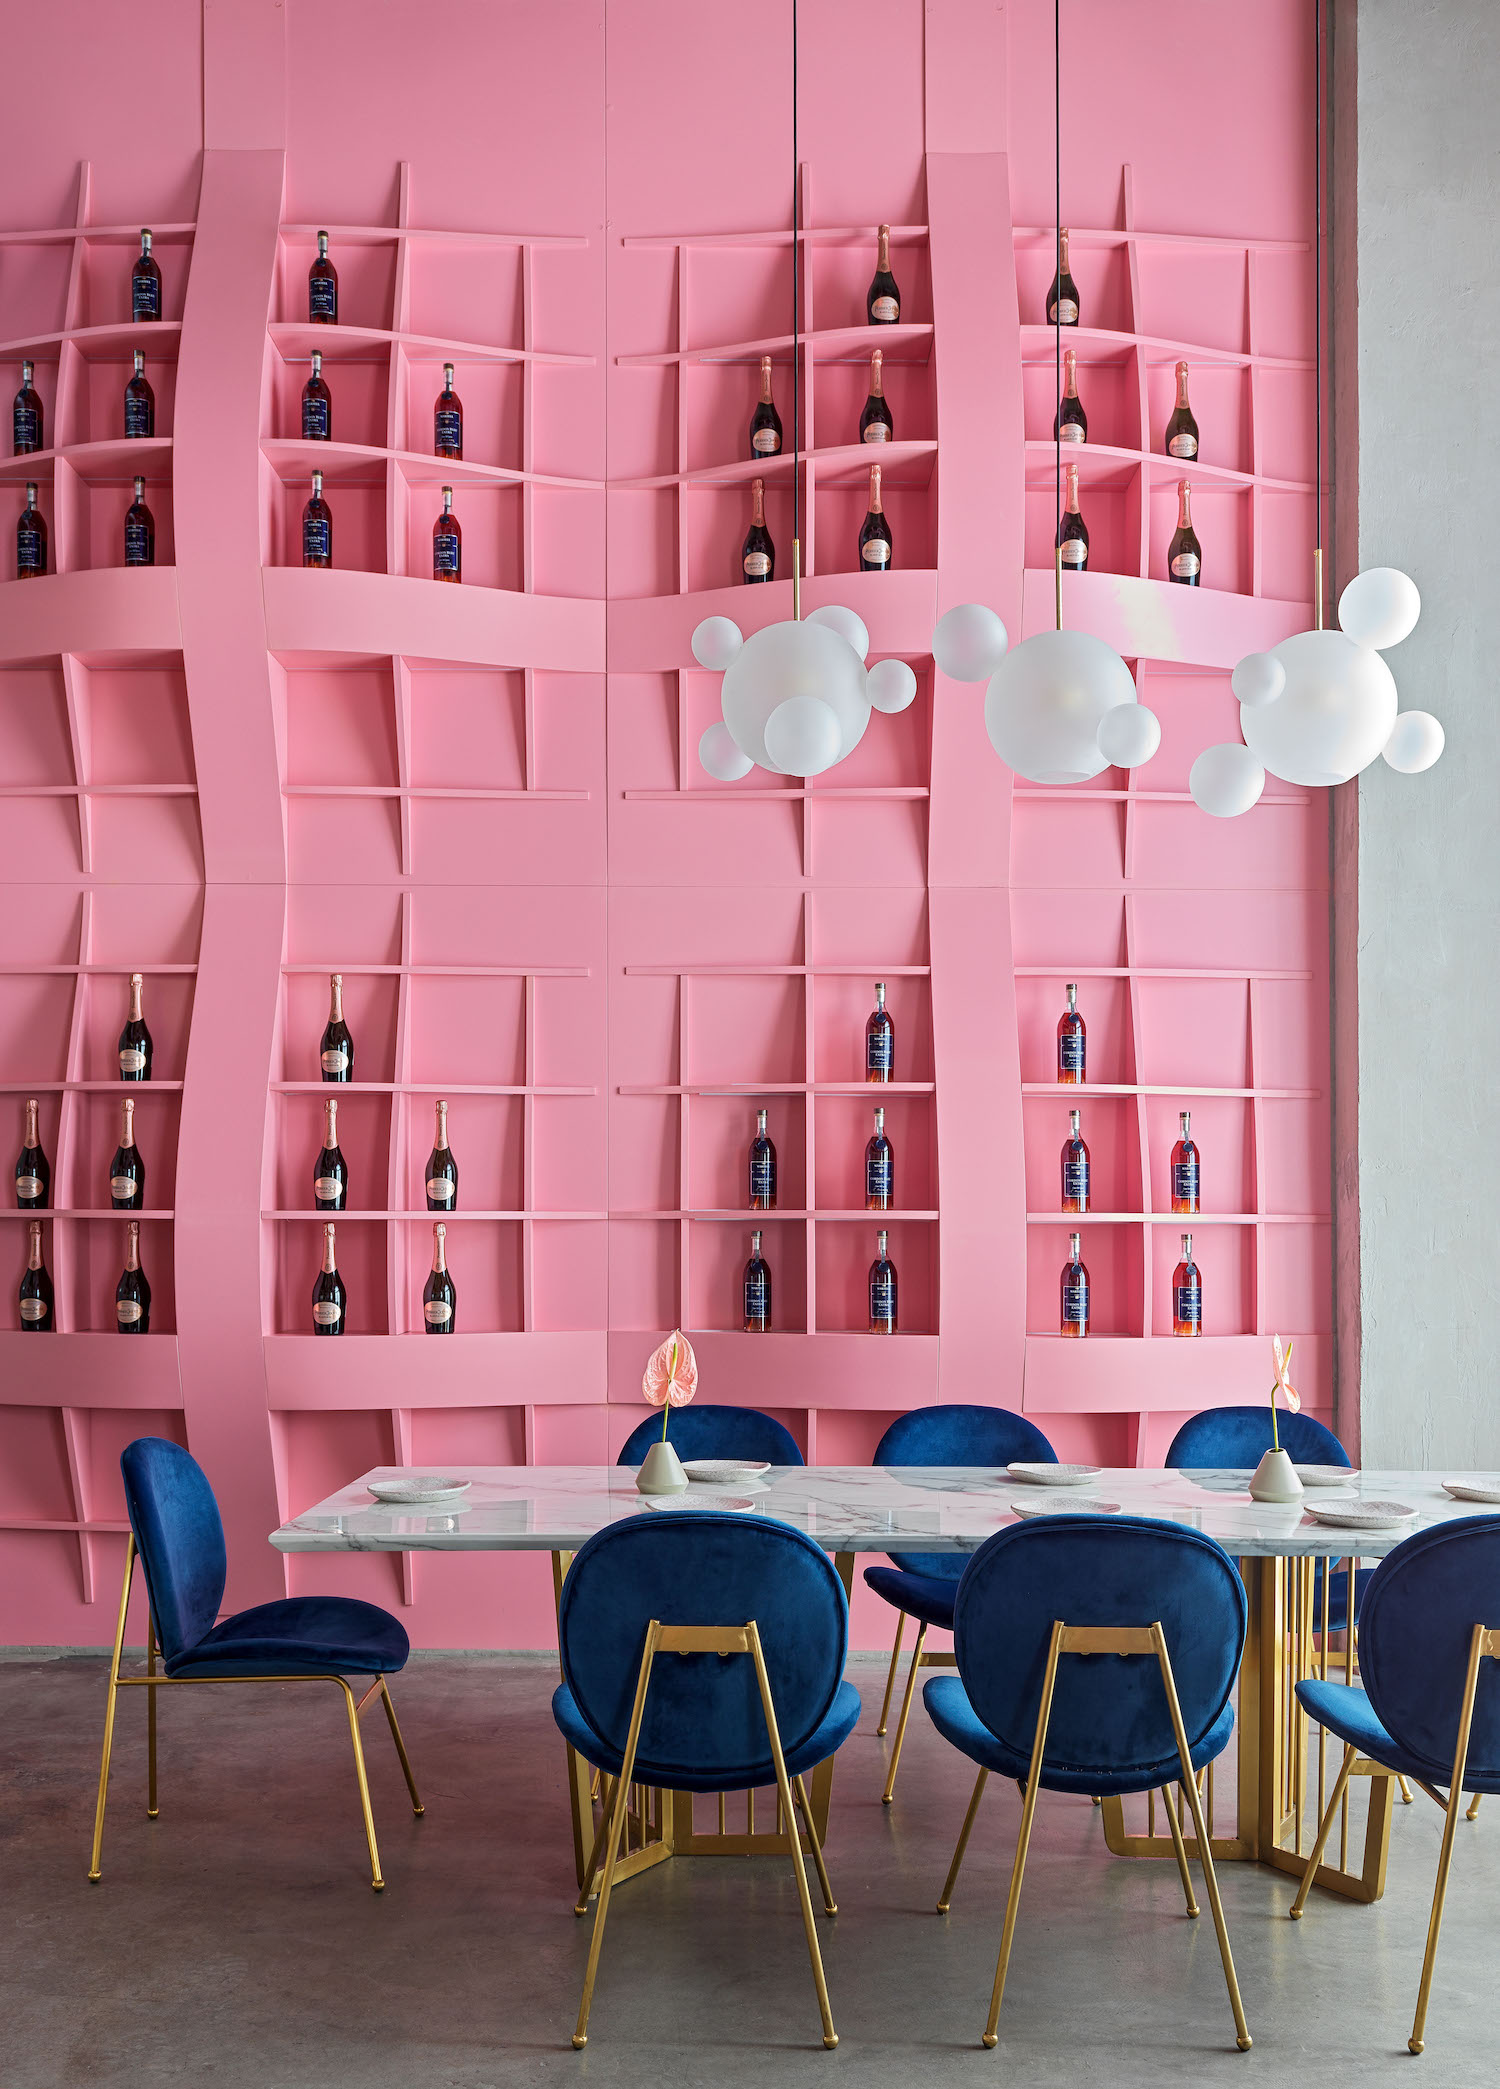 oink colored shelves for saving alcoholic drinks